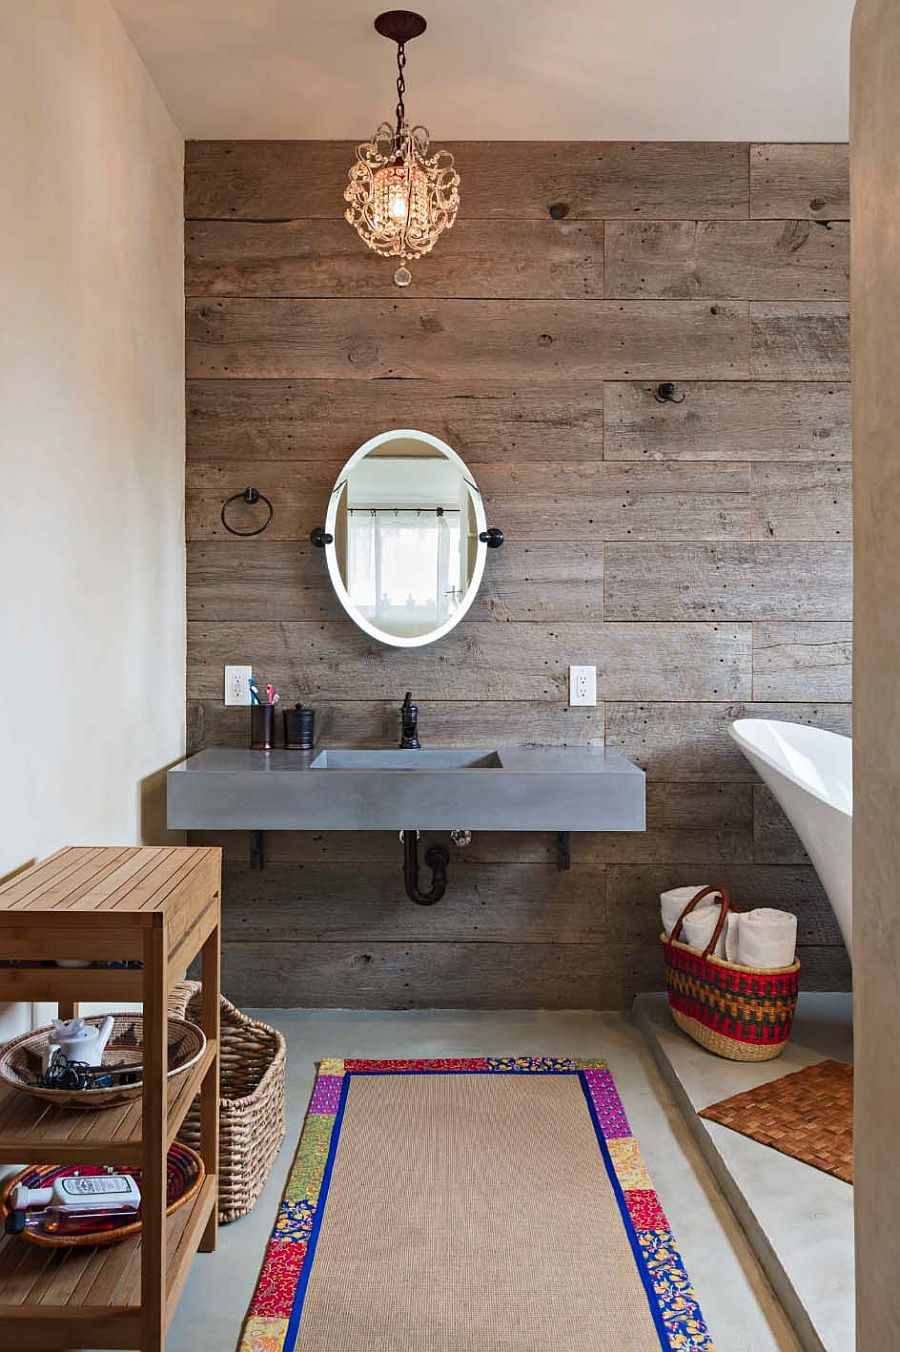 A concrete floating sink for the bathroom with wooden accent wall and traditional chandelier lighting